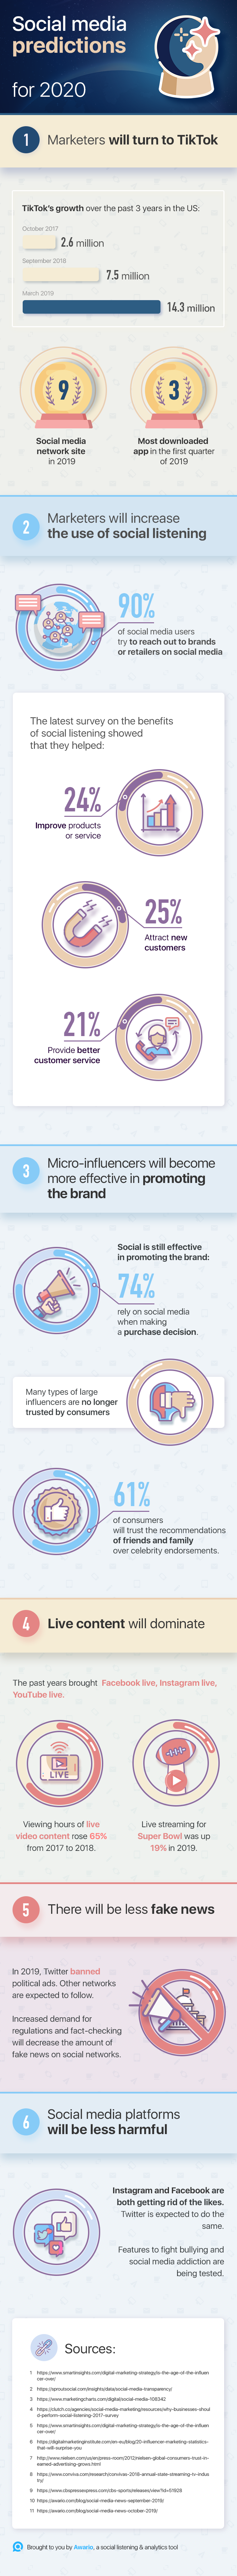 6 Biggest Social Media Trends for 2020 [Infographic]